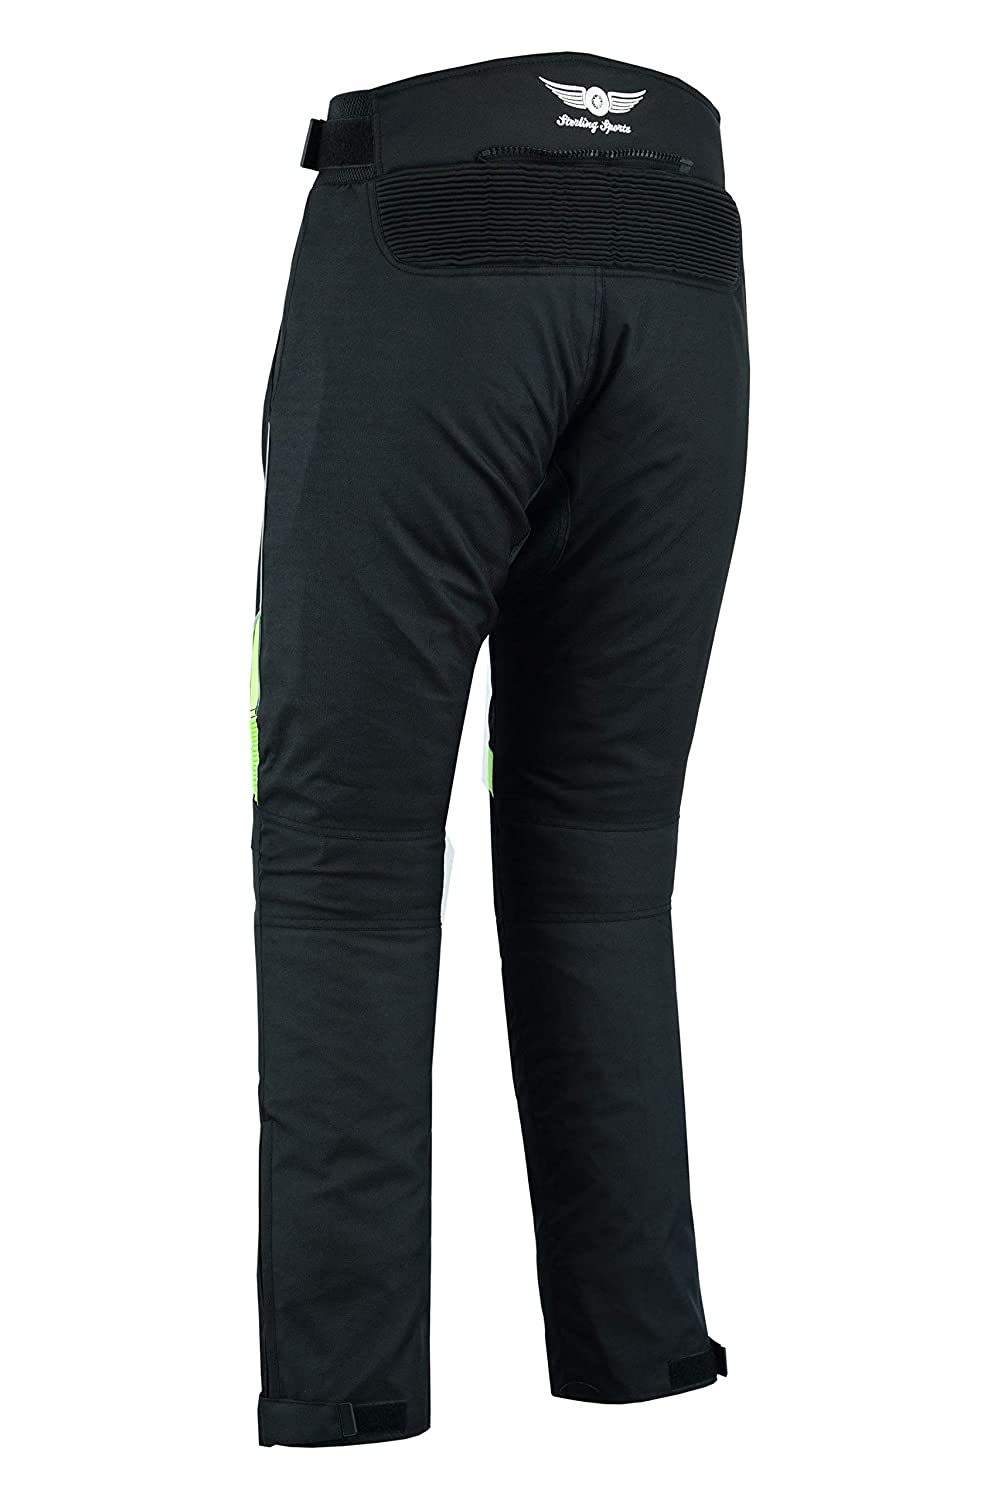 Cameo Green, 32Wx30L Sterling Sports/®Men Textile Waterproof Motorbike Motorcycle Thermal Armoured Trouser Cargo Pant Black Cameo Grey Green